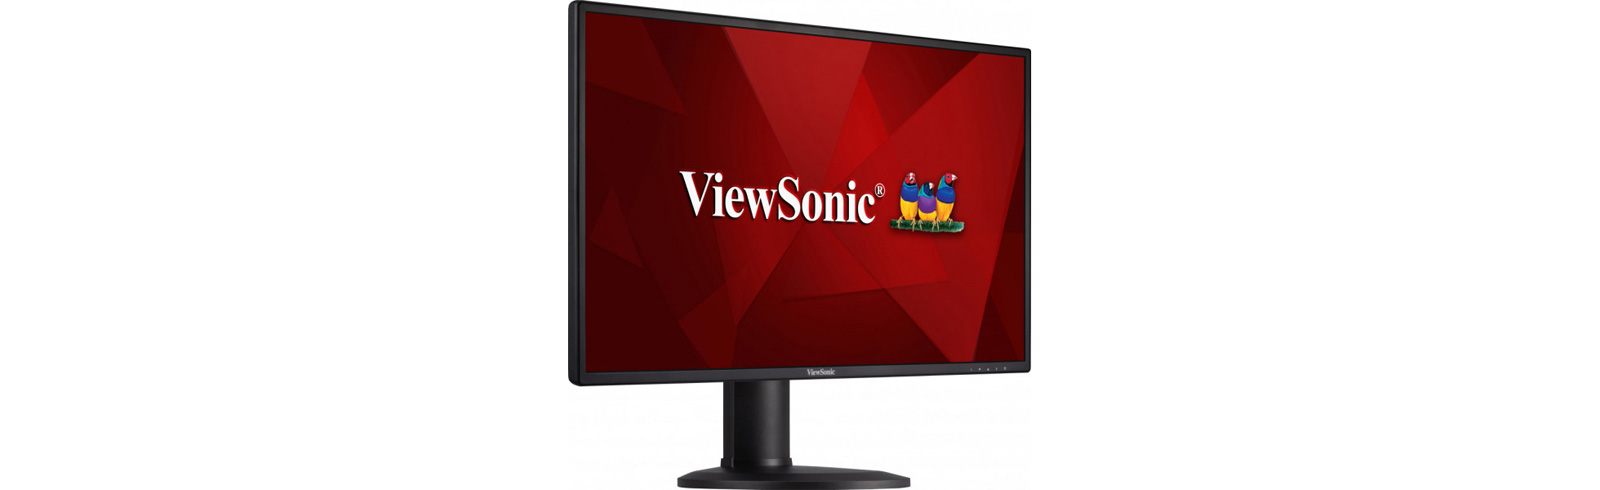 ViewSonic VG2719 and VG2419 are unveiled with SuperClear IPS panels, full ergonomy